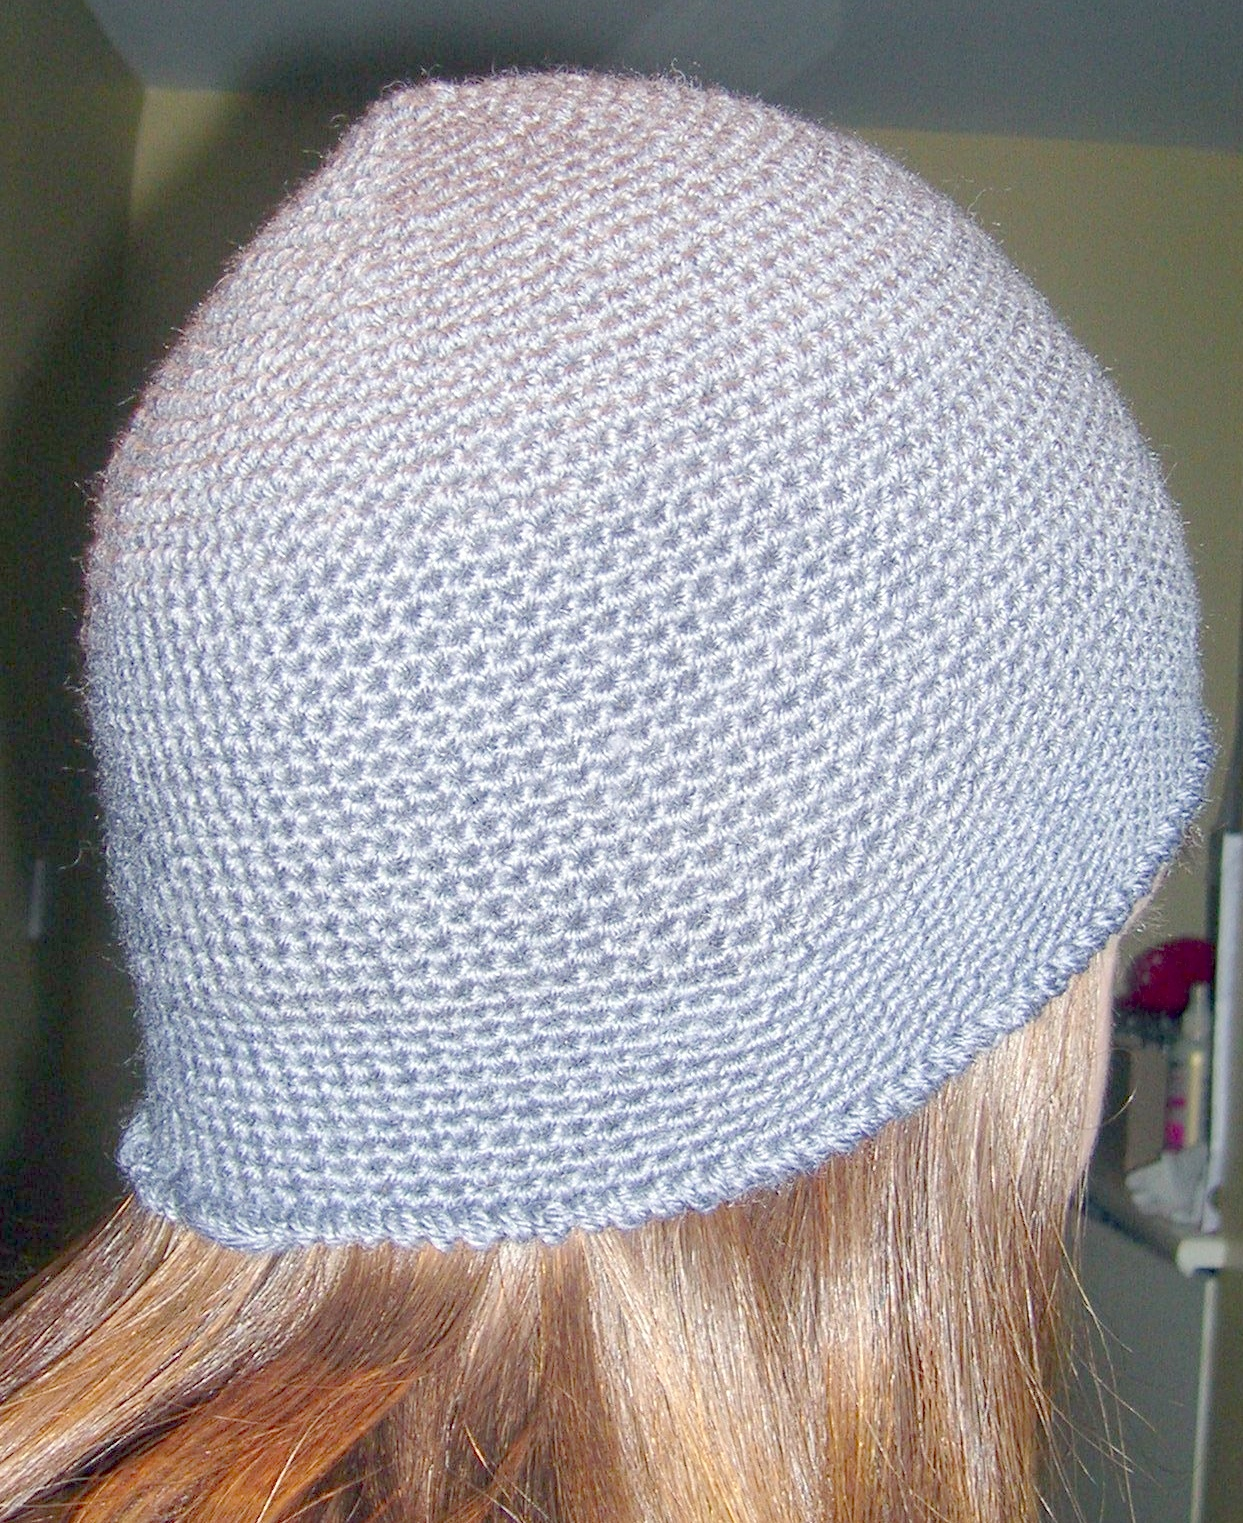 Crochet Hat Pattern Single Crochet : Increasing Crochet in the Round for Rugs, Hats, and Other ...